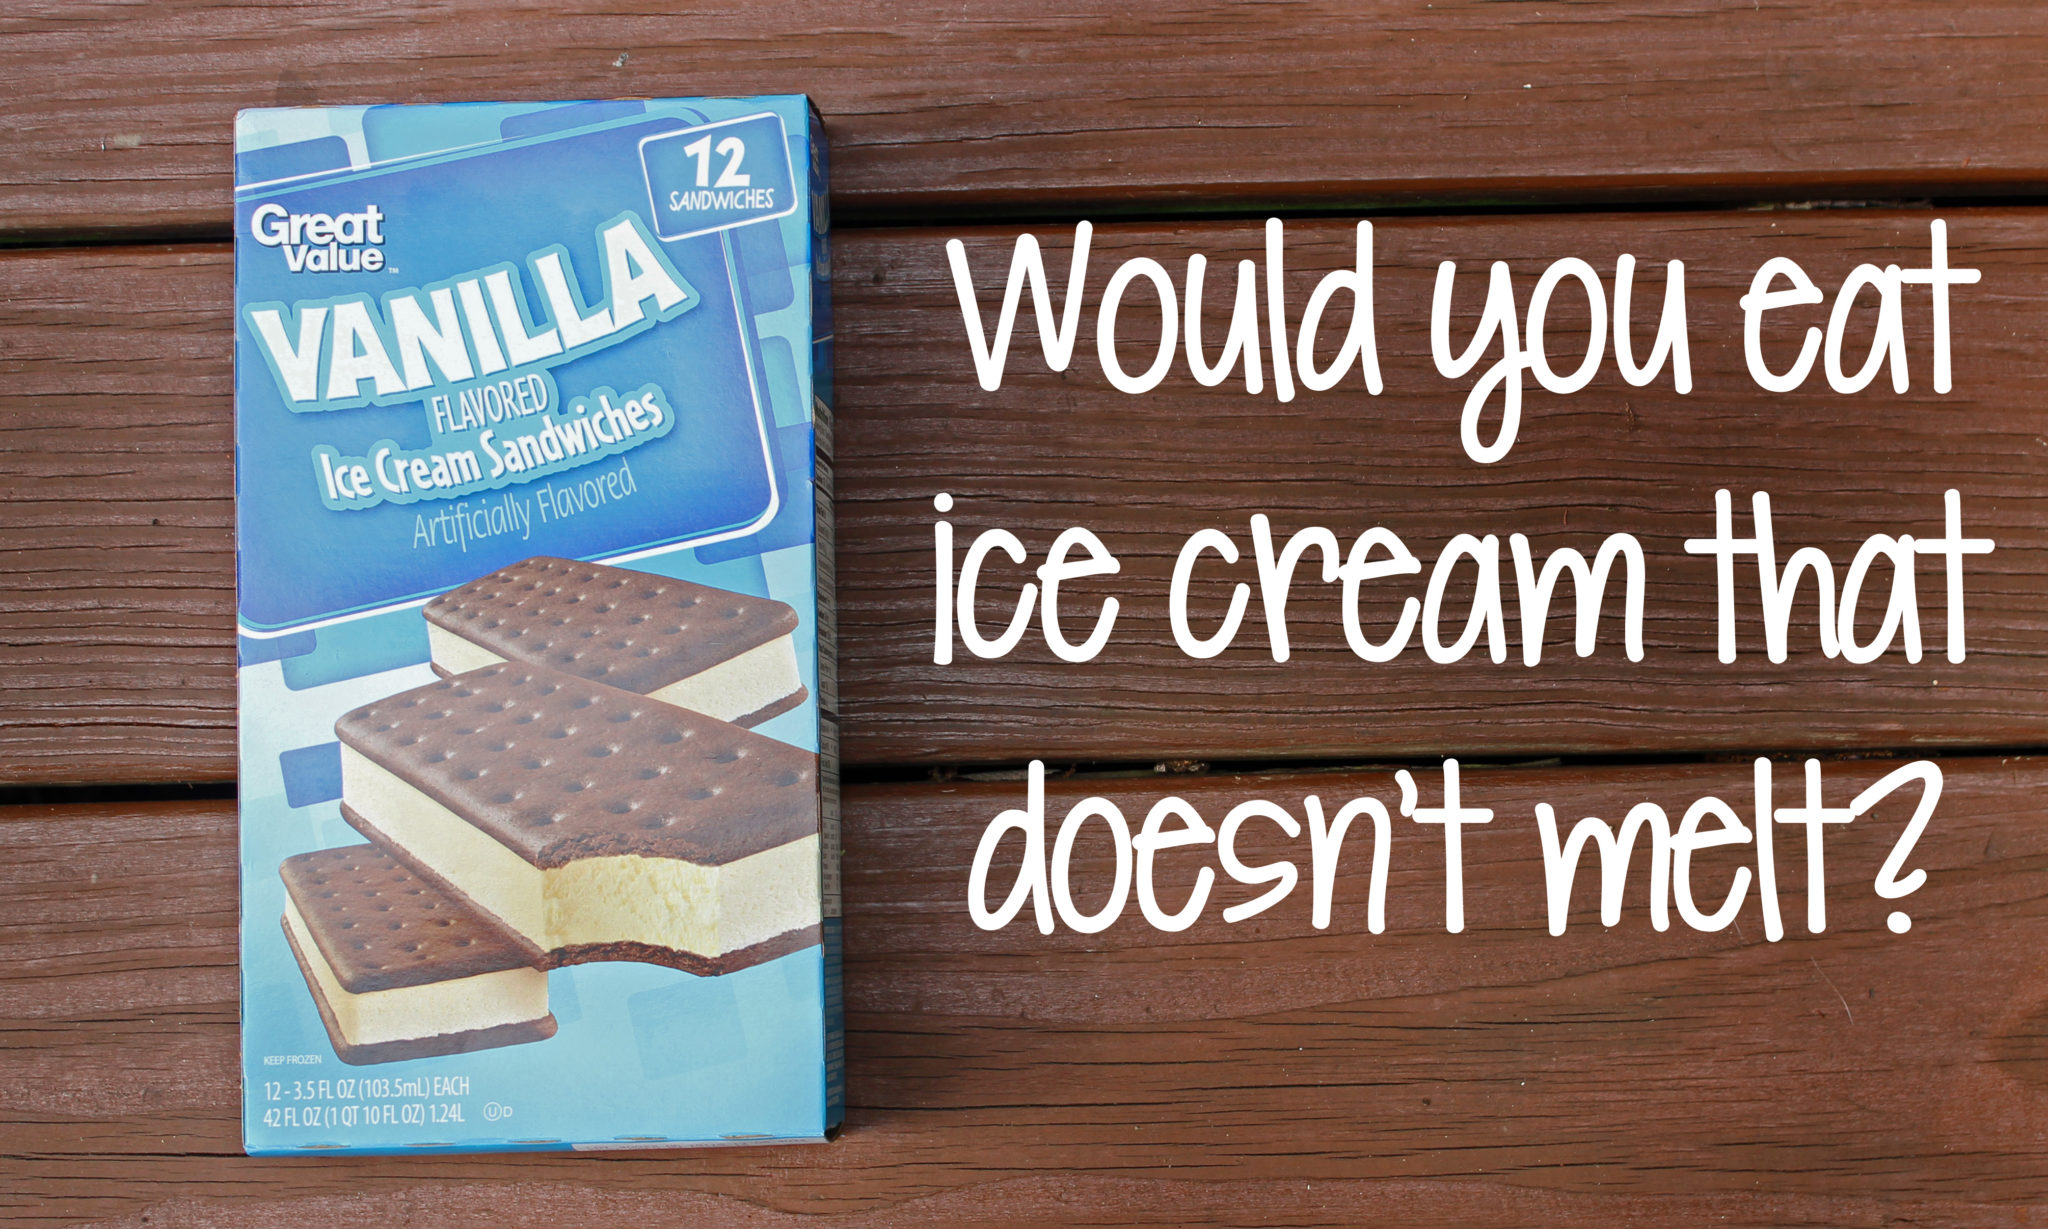 Would you eat ice cream that doesn't melt?